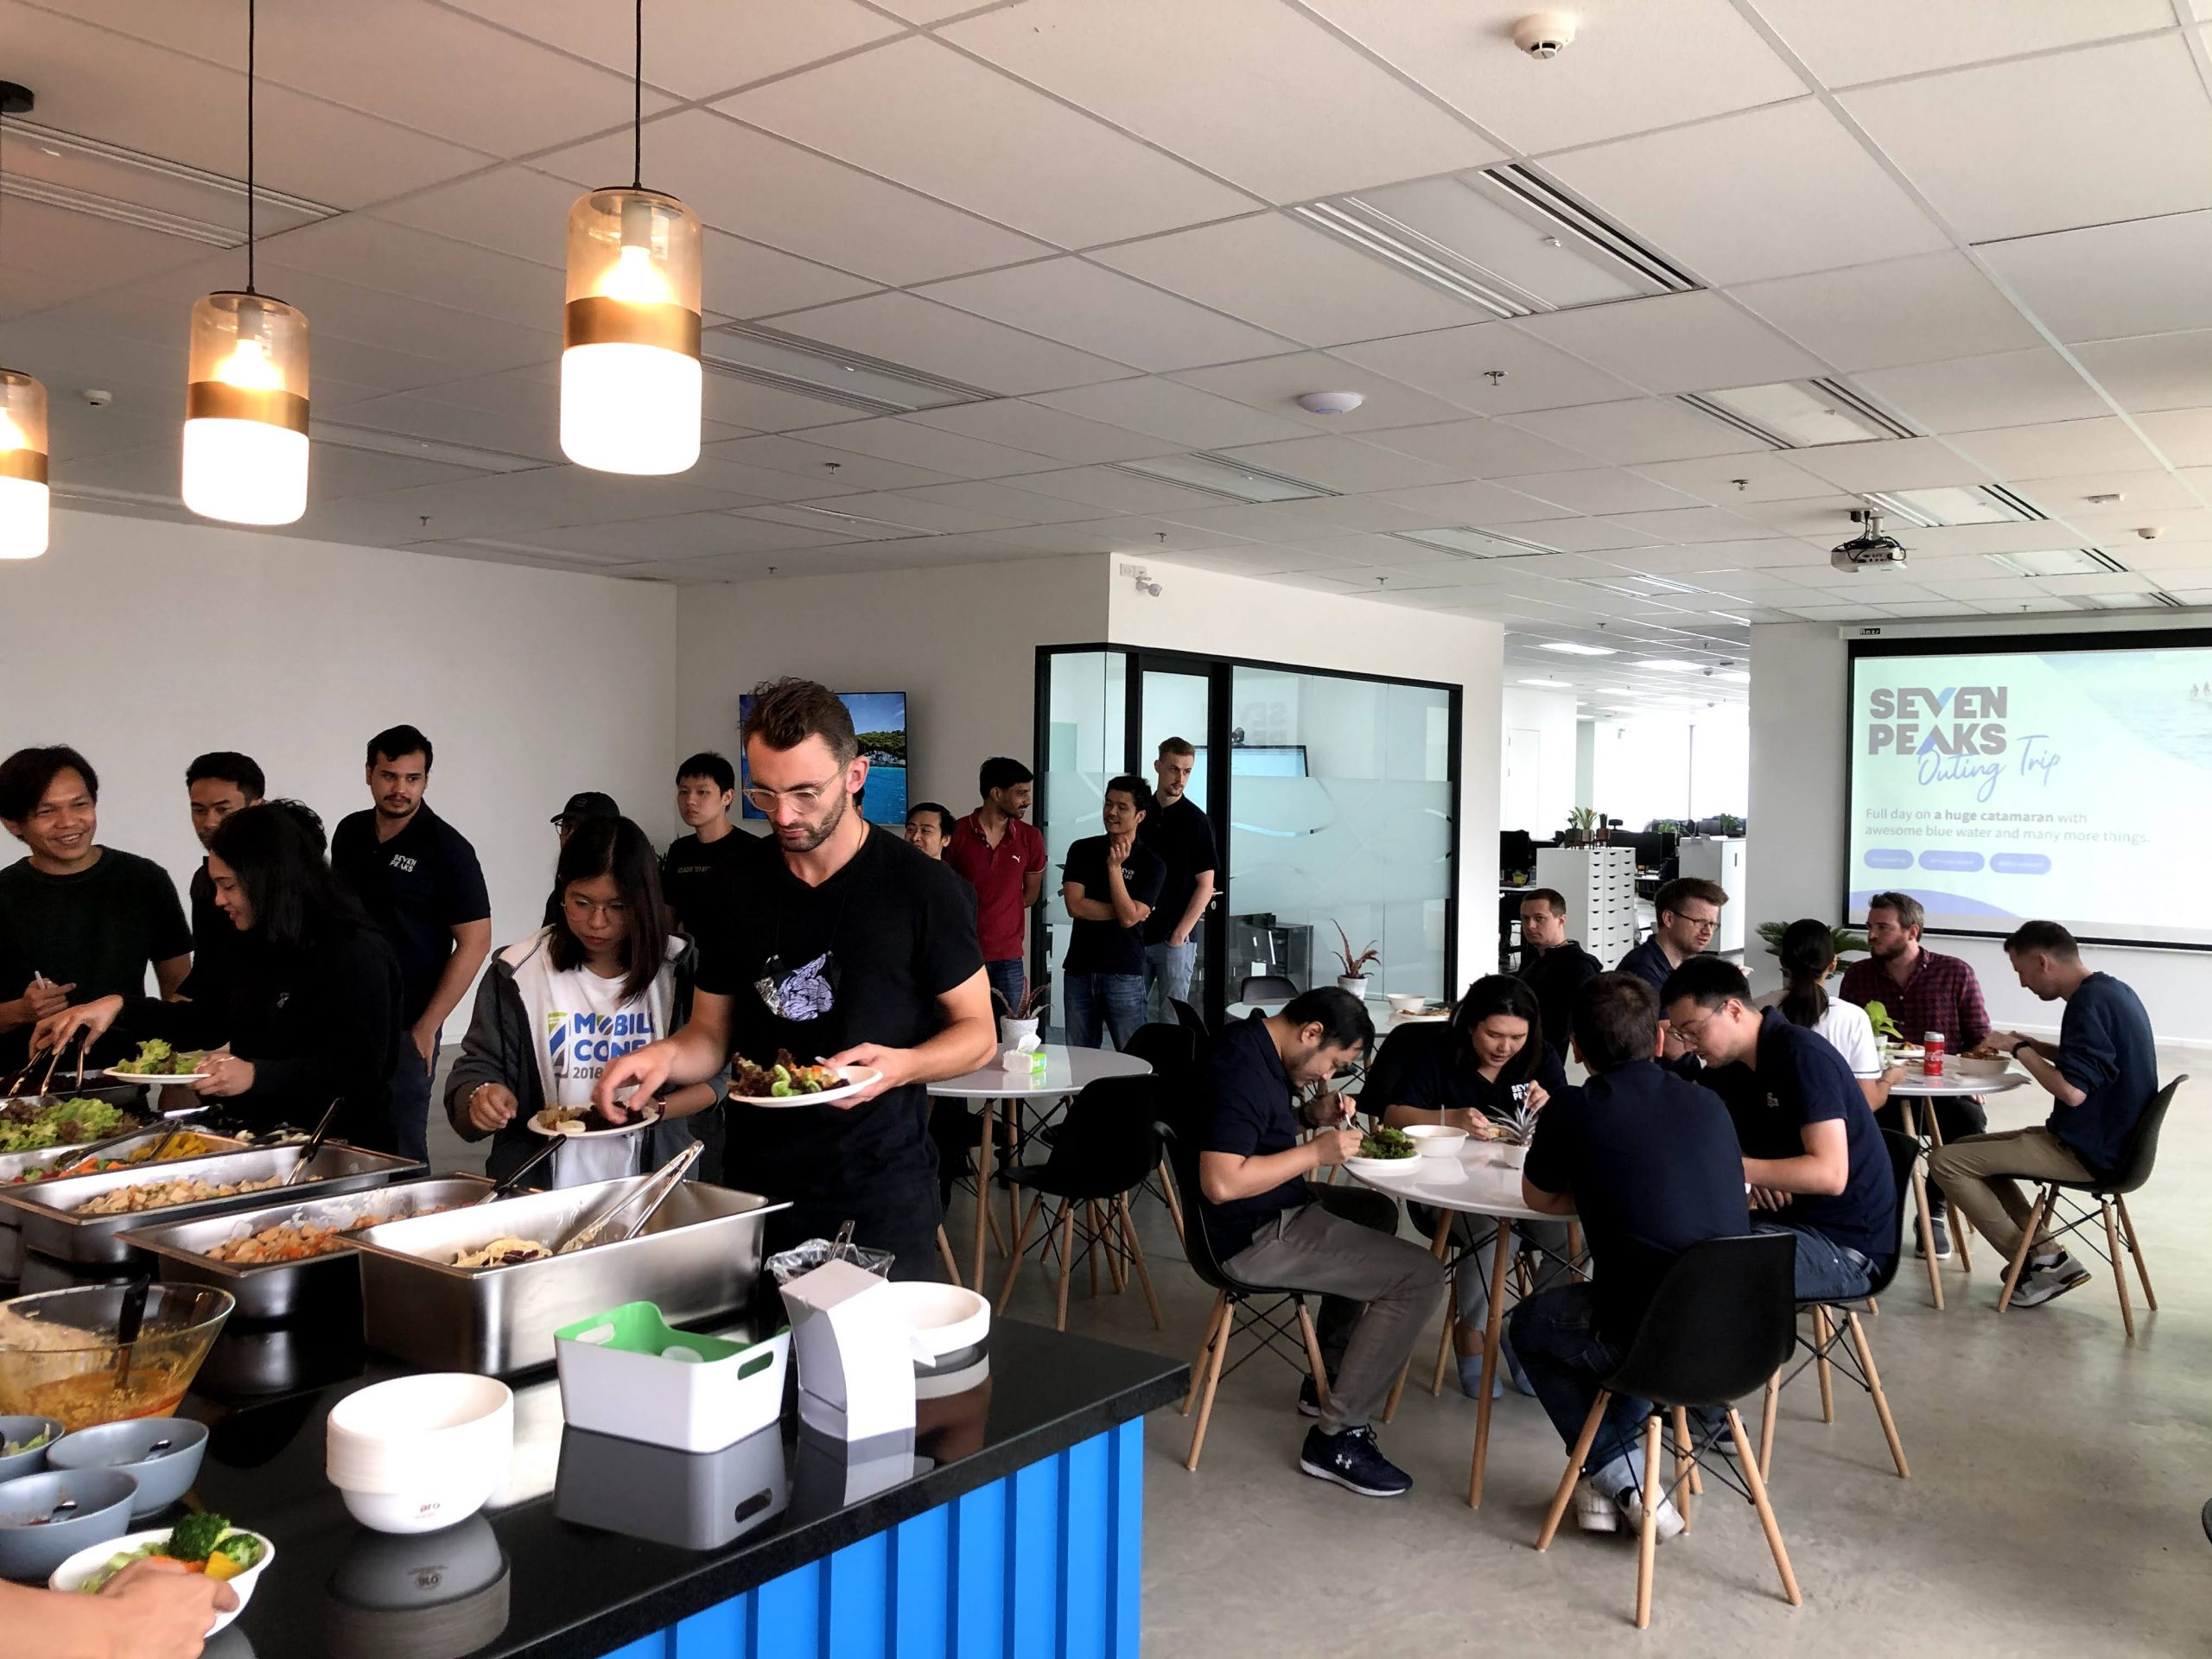 IT jobs in Thailand at Seven Peaks Software